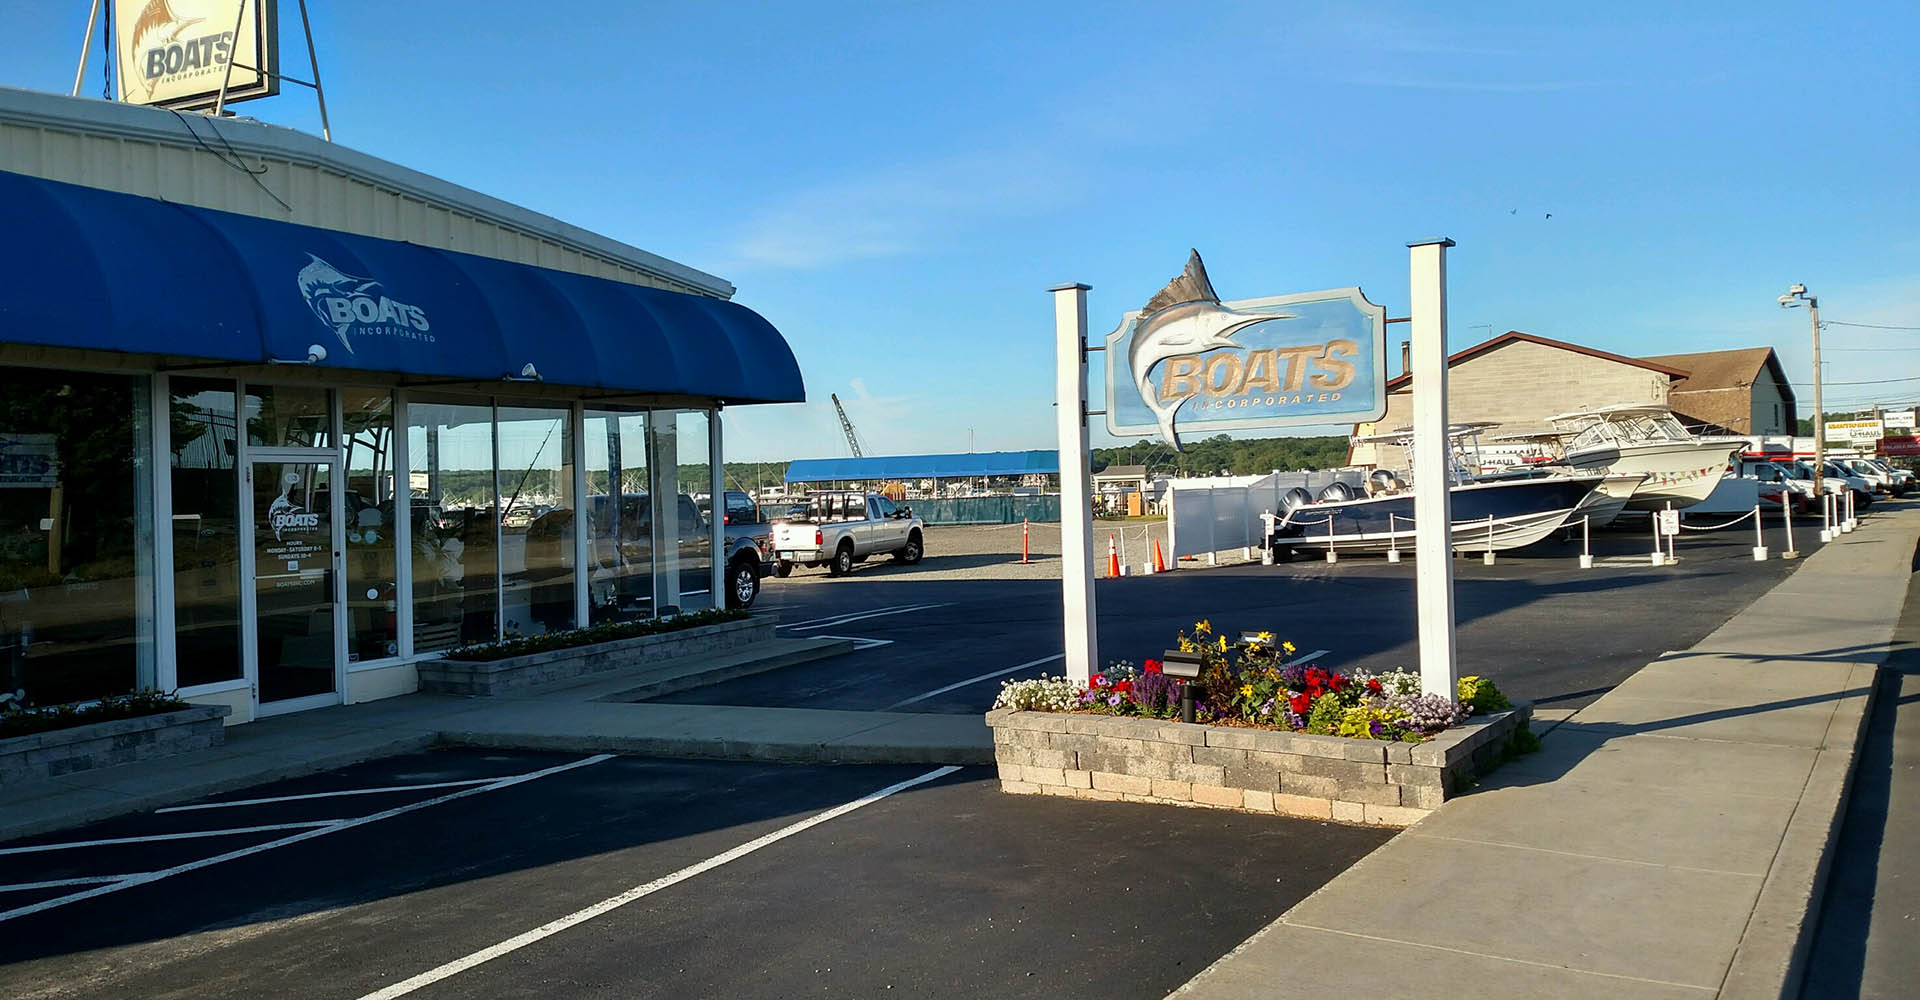 Store front image for the dealership located at Niantic, CT